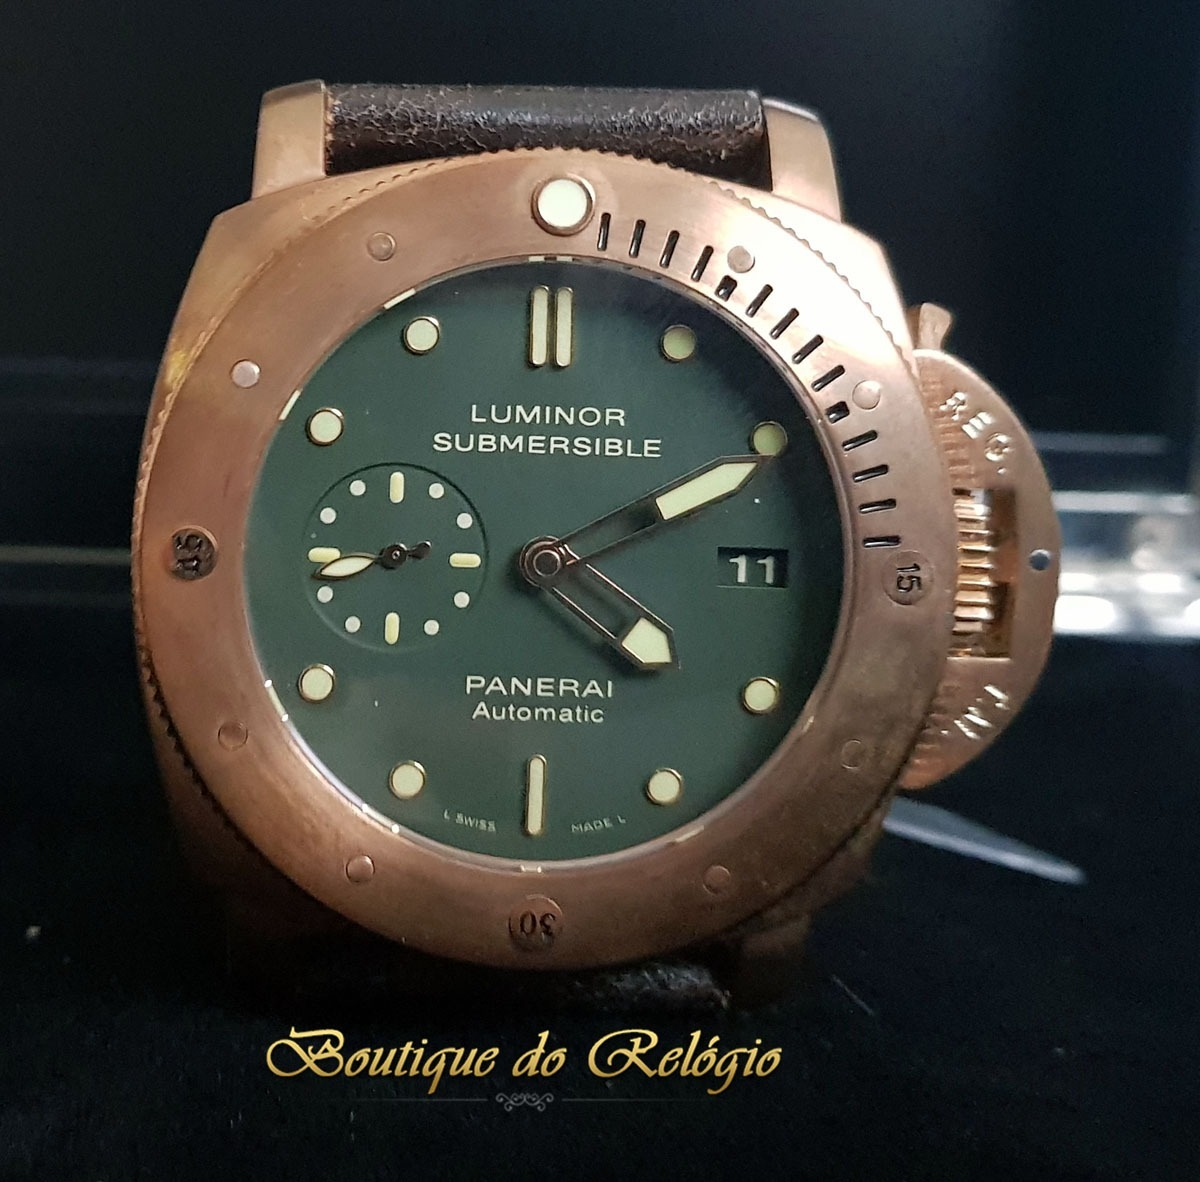 dbe84c5ba89 Relógio Eta Modelo Jf Submersible 1950 3 Days Bronzo - 47mm - R ...